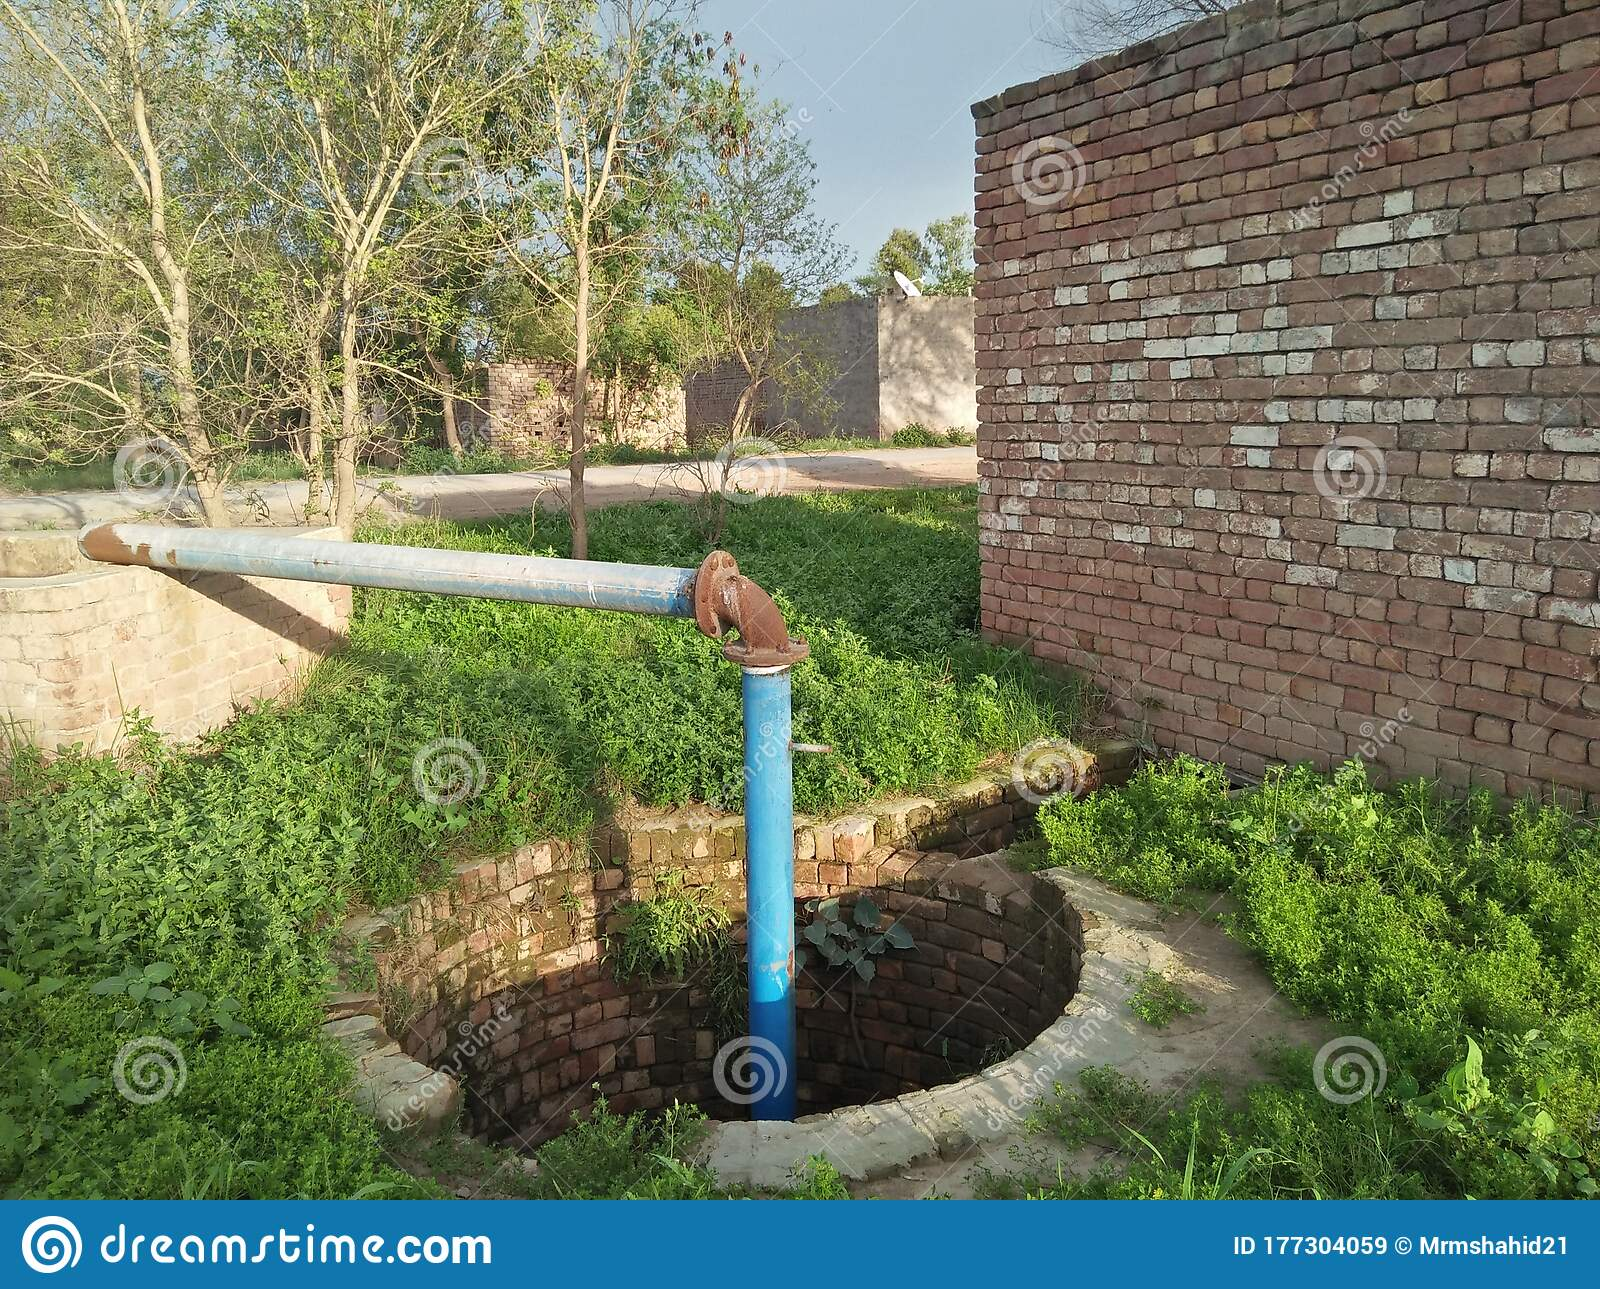 Nicole thea, a london dancer and influencer who had gained a following for her youtube videos following her pregnancy, died saturday. Engine Tube Well Used For Drainage Of Water In Punjab Pakistan For Irrigation Stock Image Image Of Water Tube 177304059